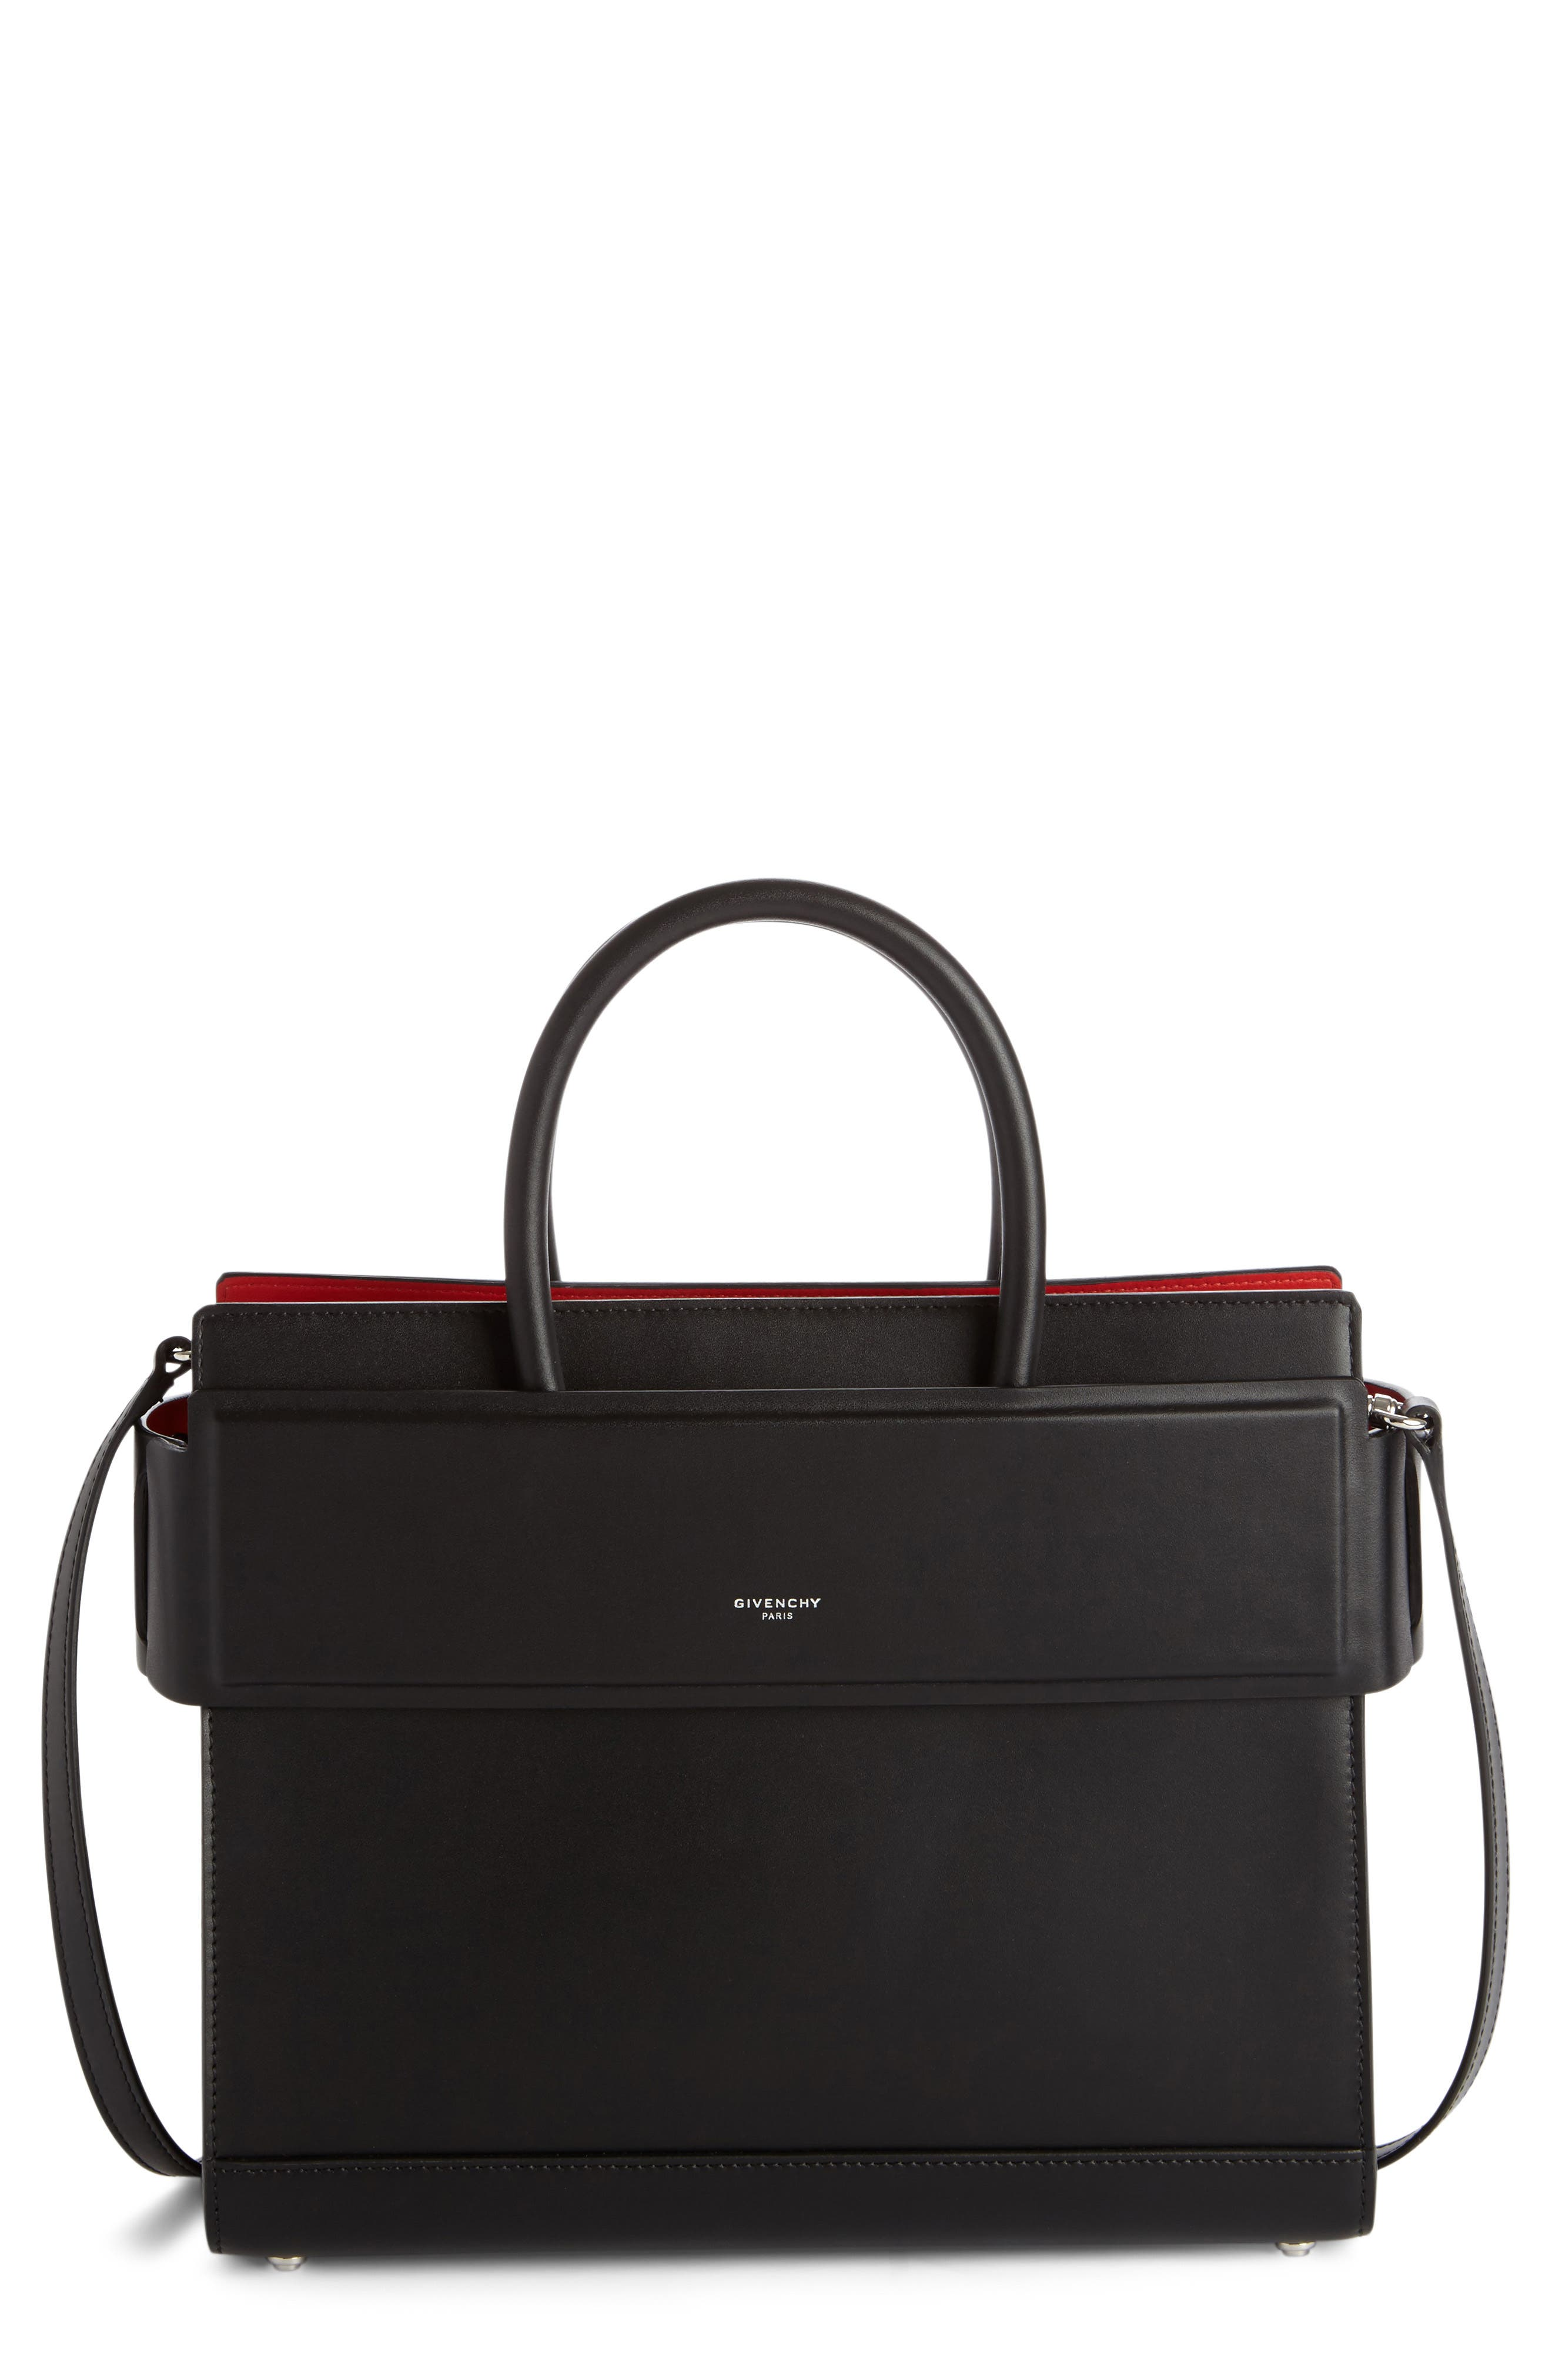 Alternate Image 1 Selected - Givenchy Small Horizon Calfskin Leather Tote